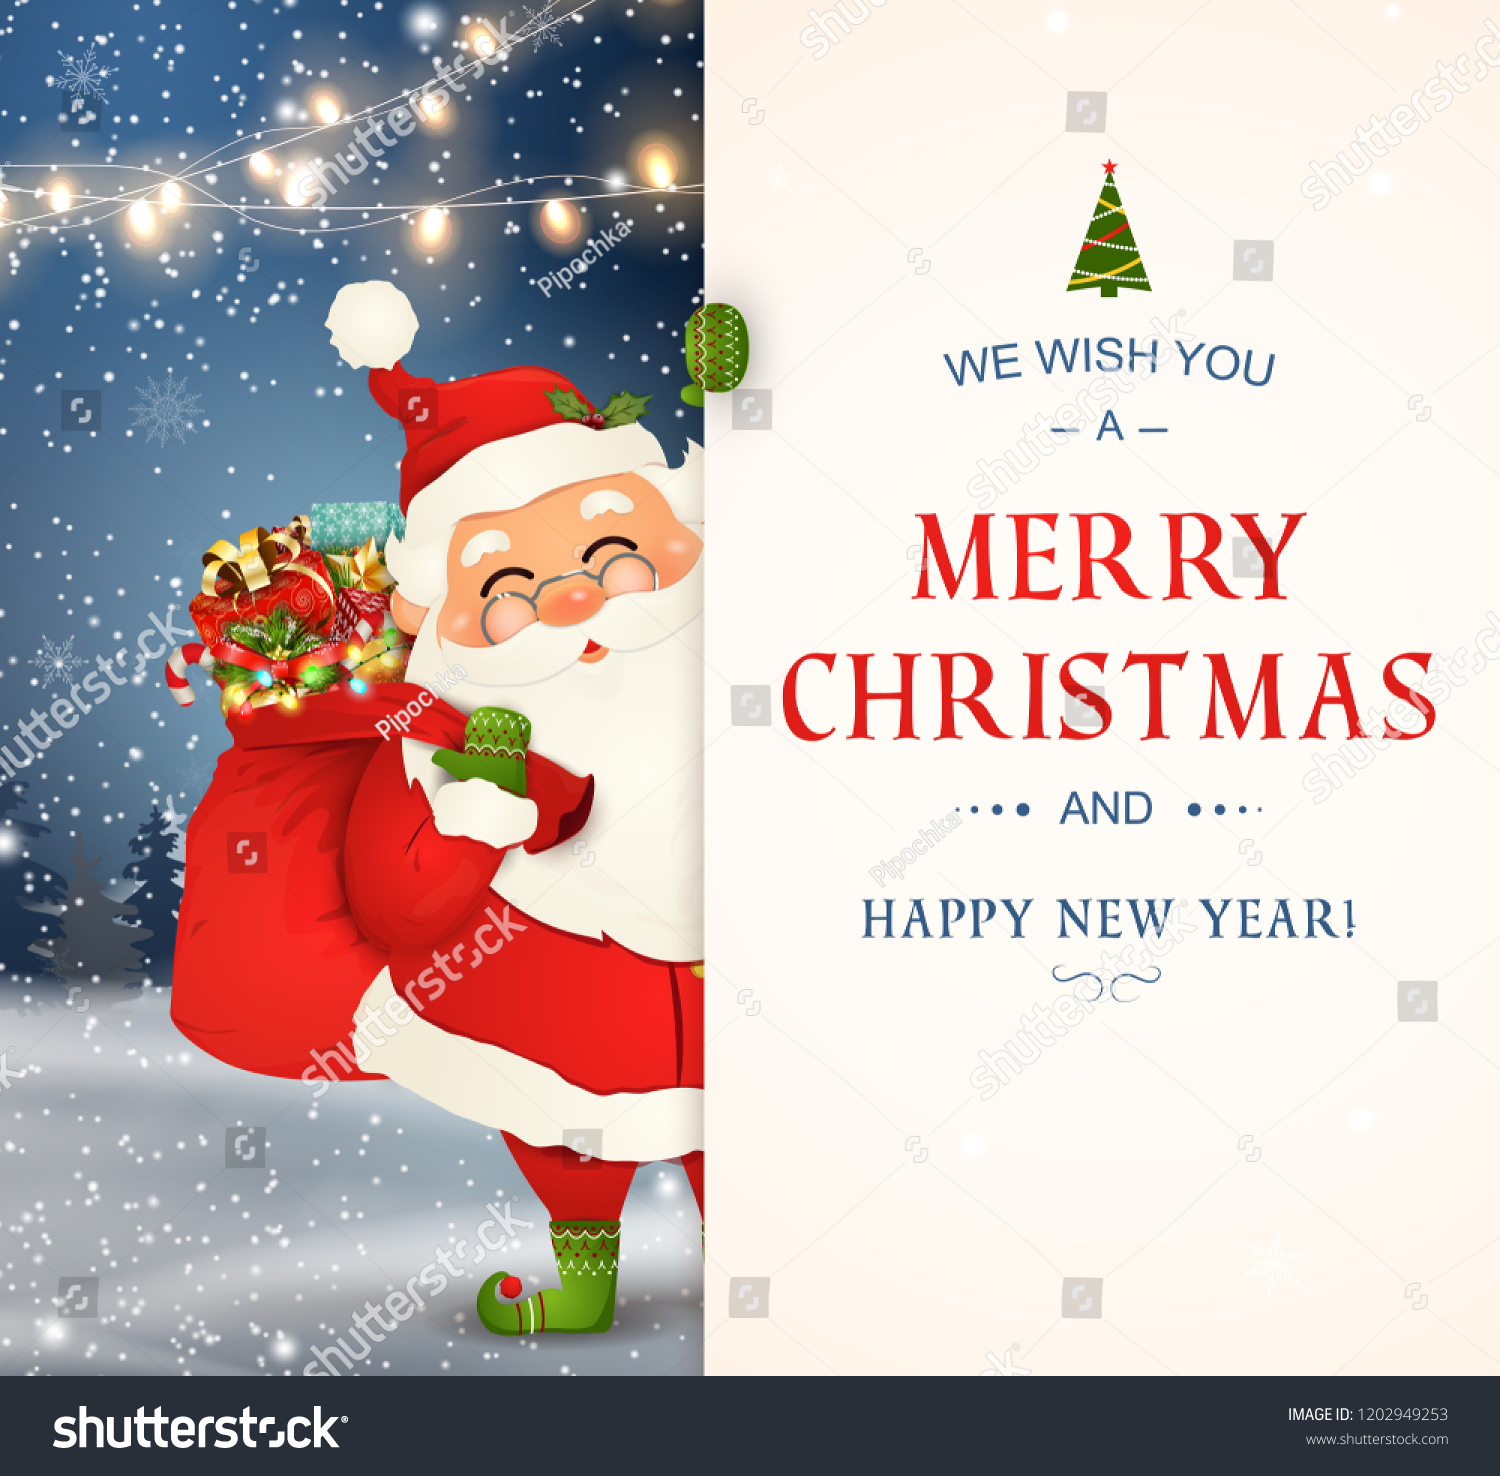 we wish you merry christmas happy stock vector royalty free 1202949253 https www shutterstock com image vector we wish you merry christmas happy 1202949253